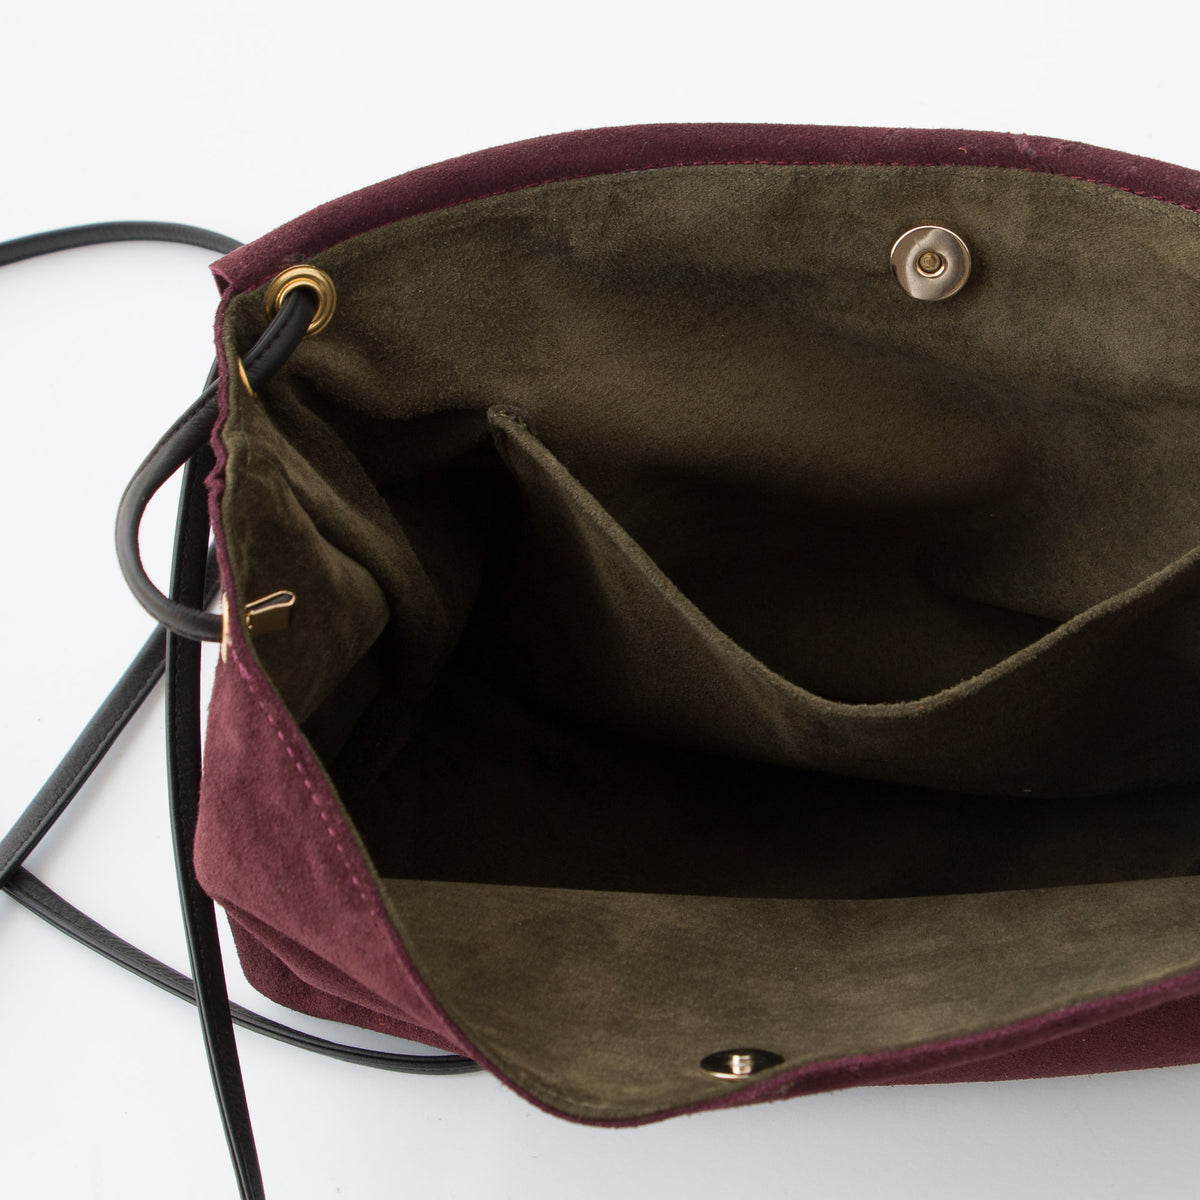 Interior Detail - Bordeaux & Khaki - Handmade Flap Purse in Calf Suede & Pork Suede Lining - Sold by Chic & Basta